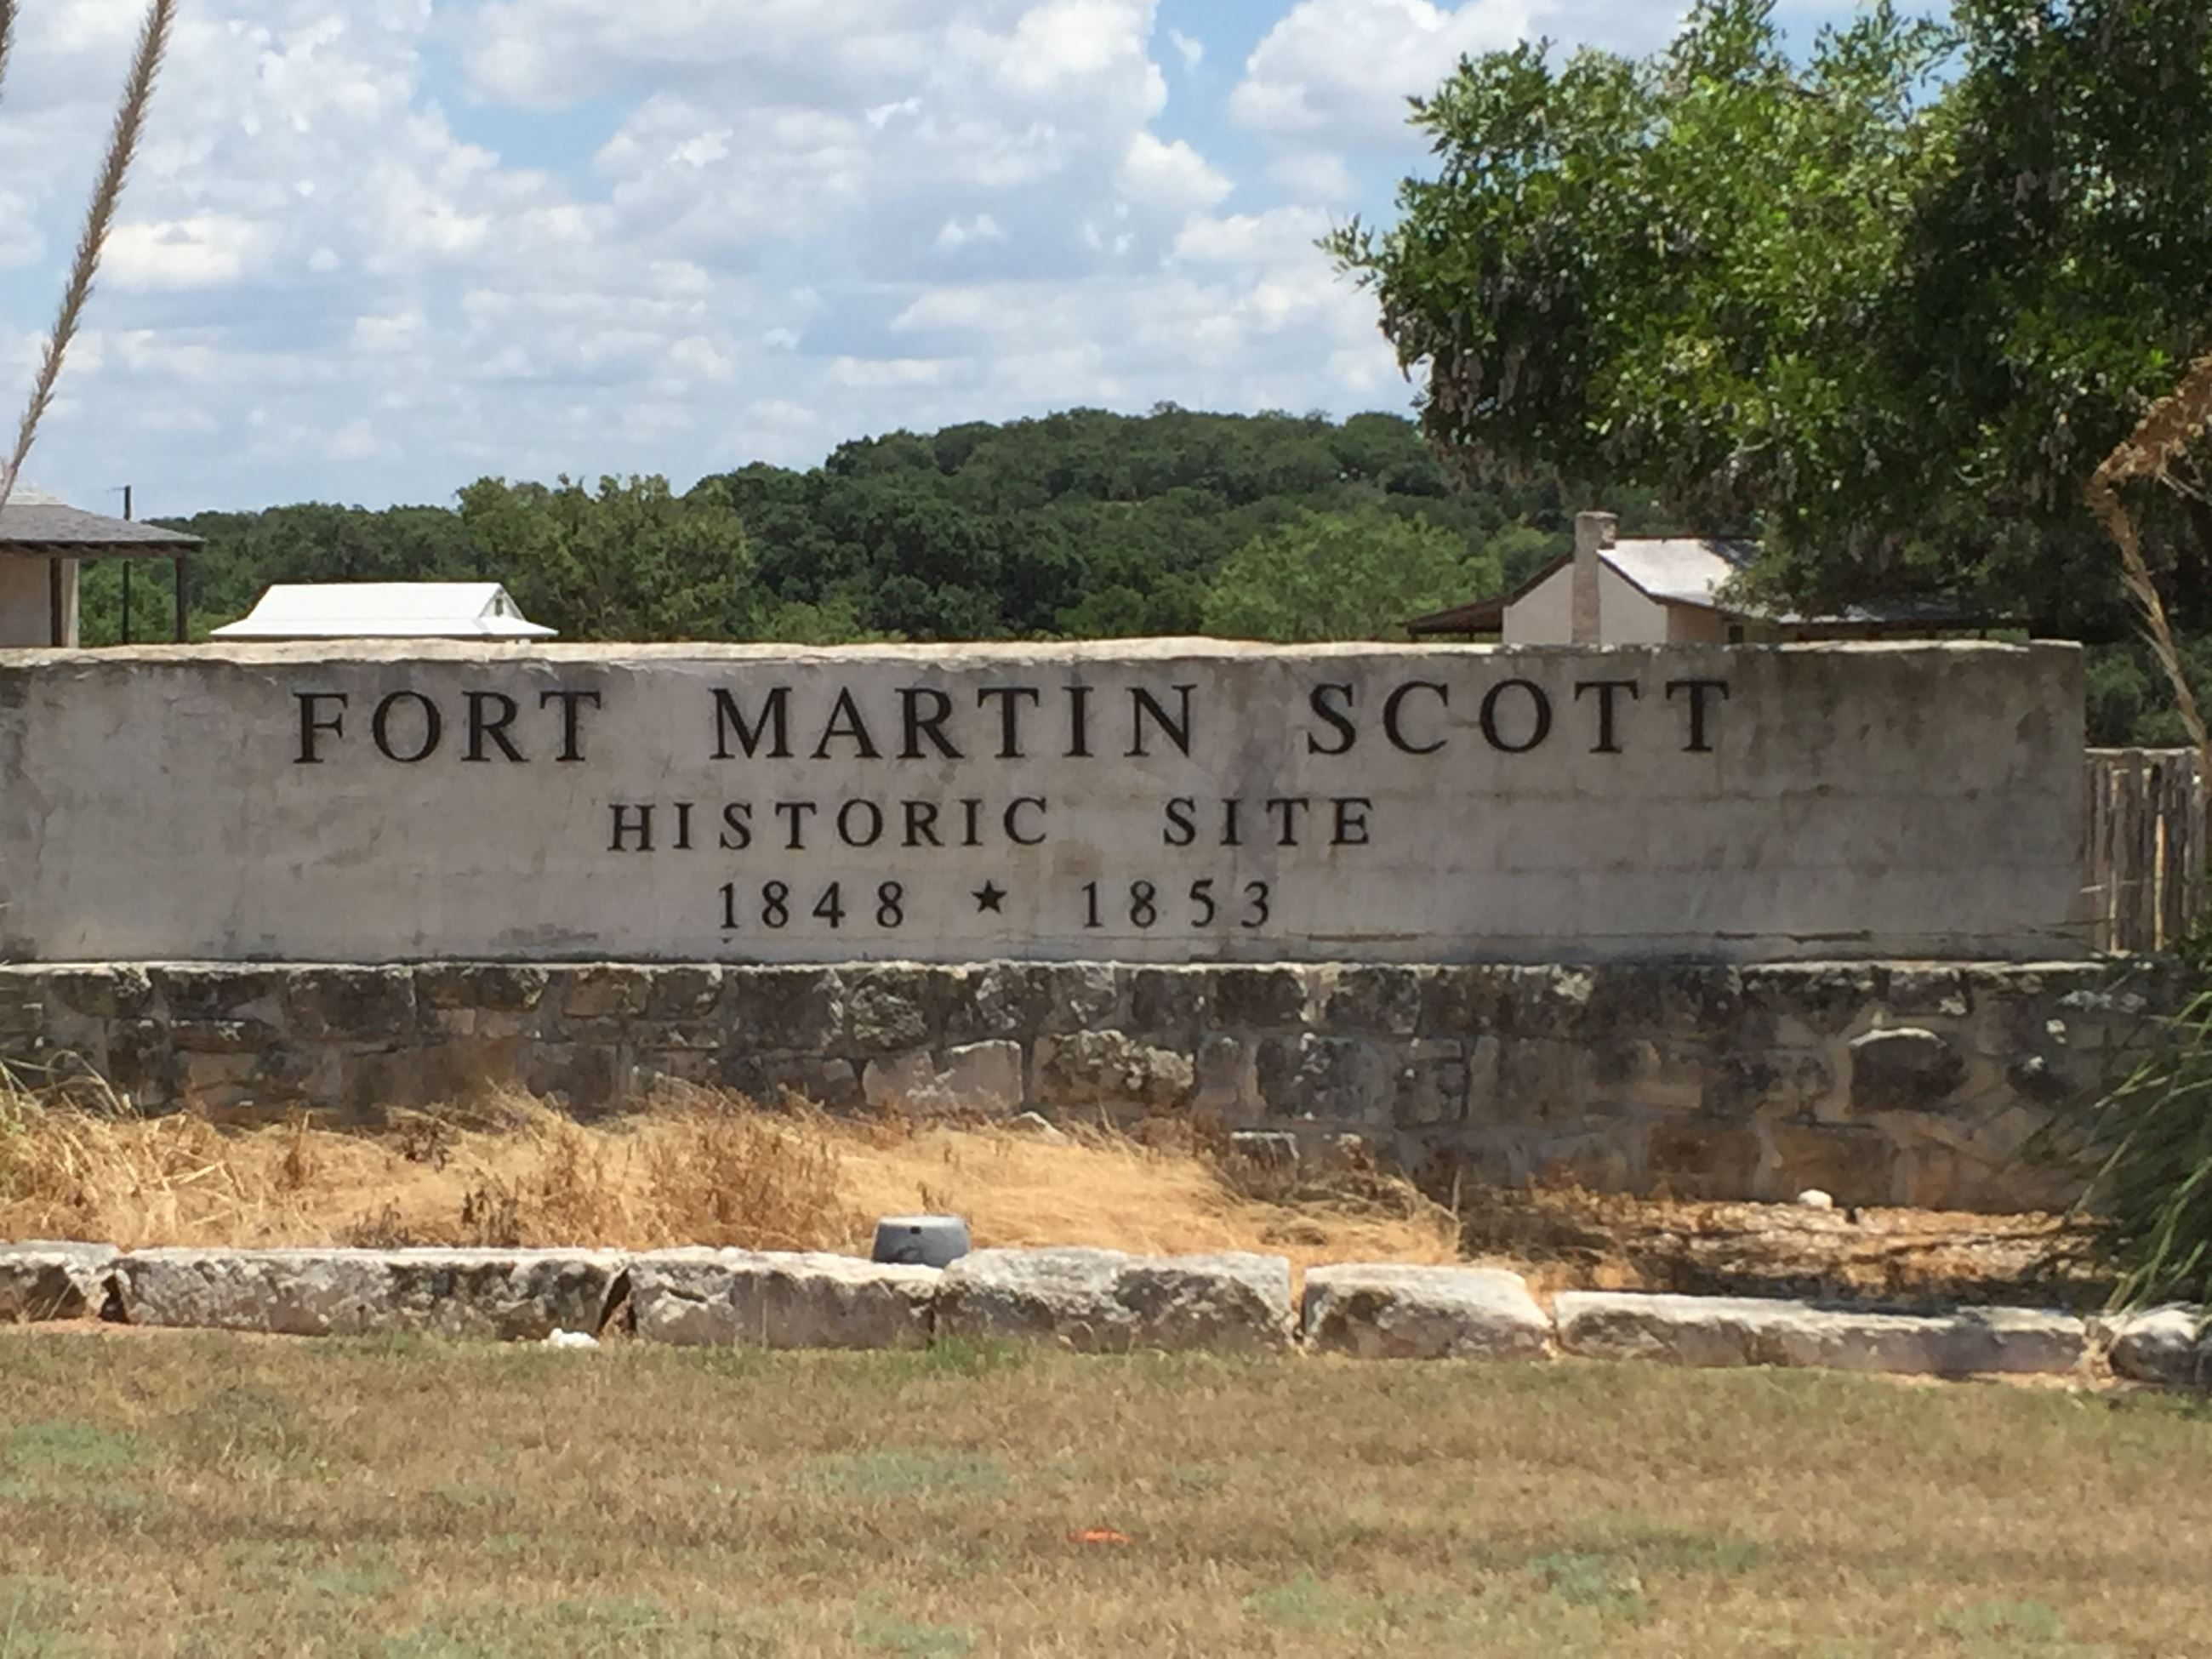 Fort Martin Scott Historic Sign